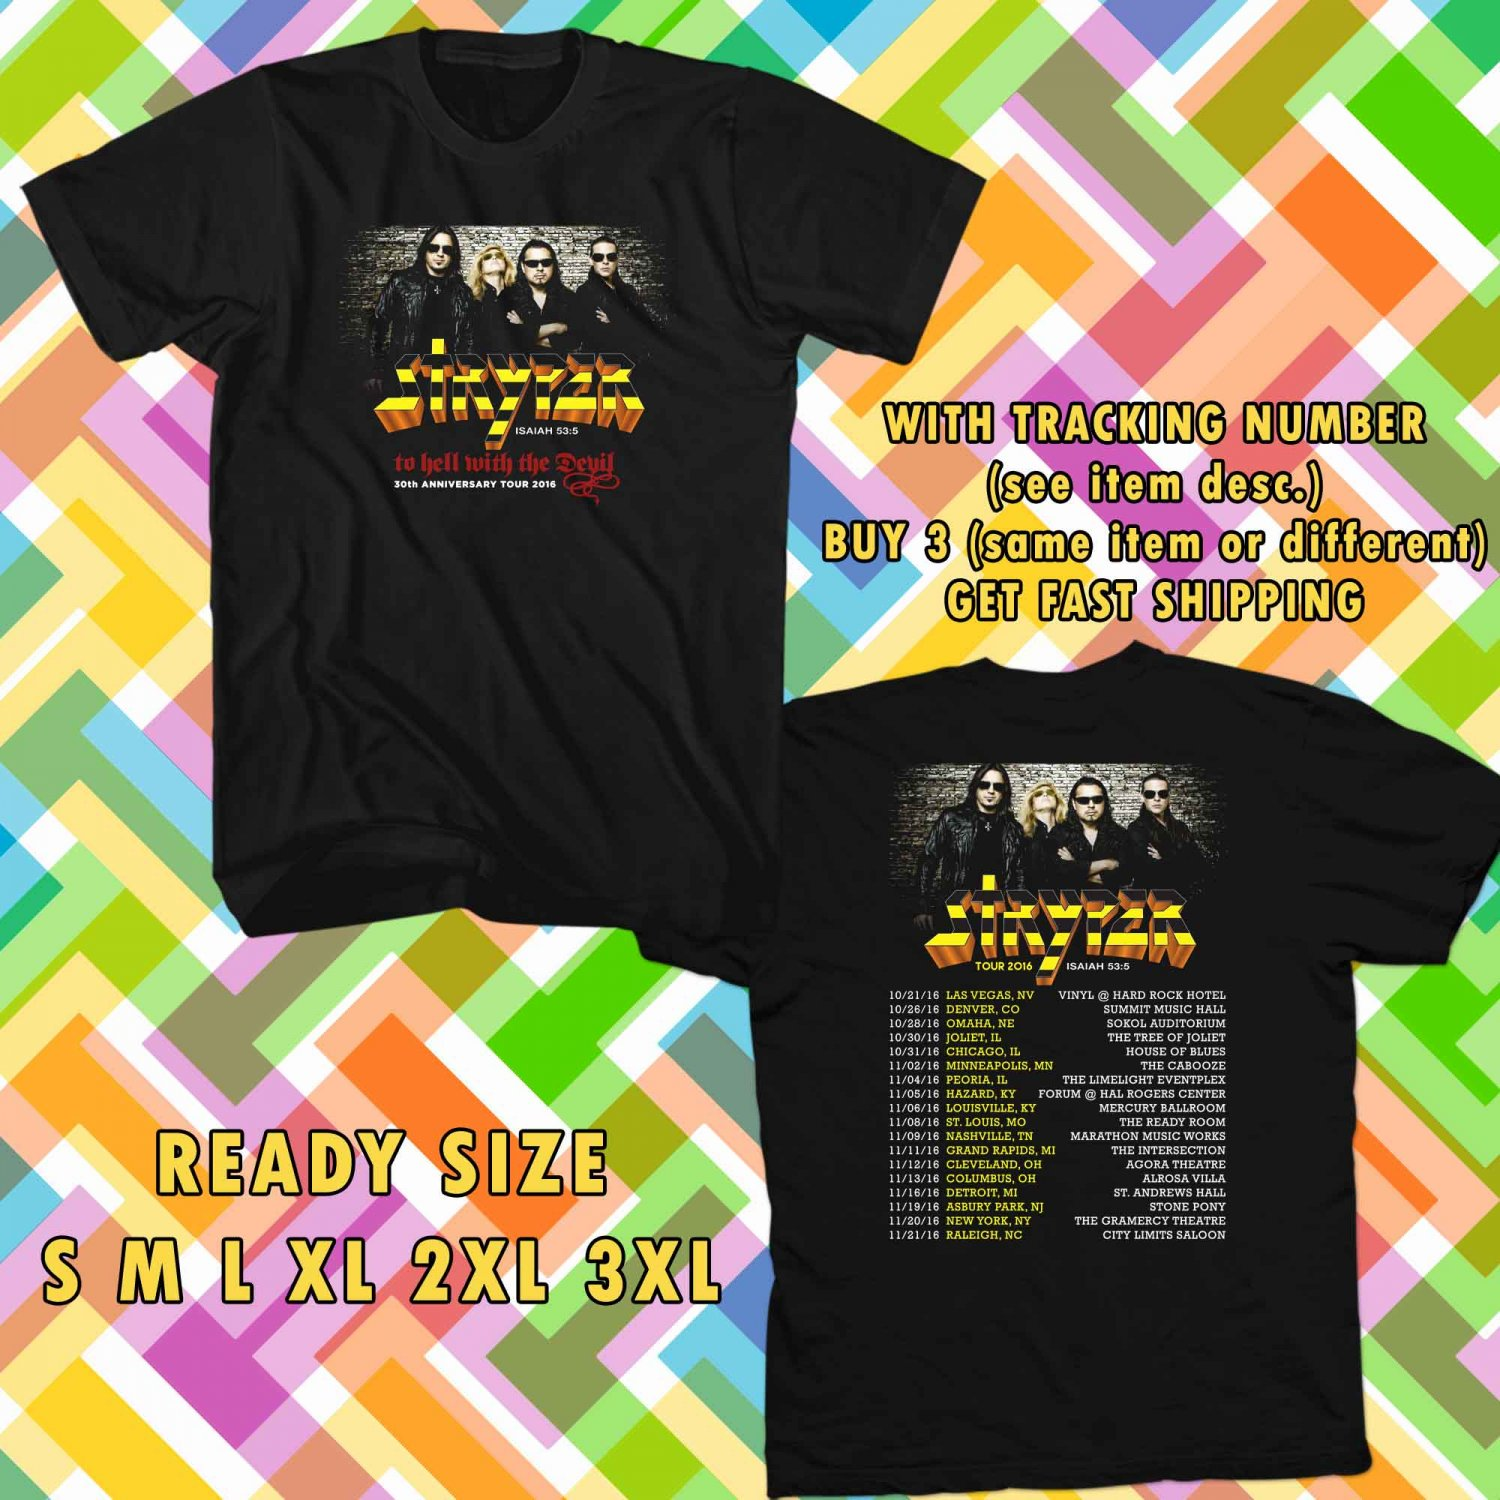 WOW 30TH ANNIVERSARY FROM STRYPER TOUR 2016 BLACK TEE S-3XL ASTR 125